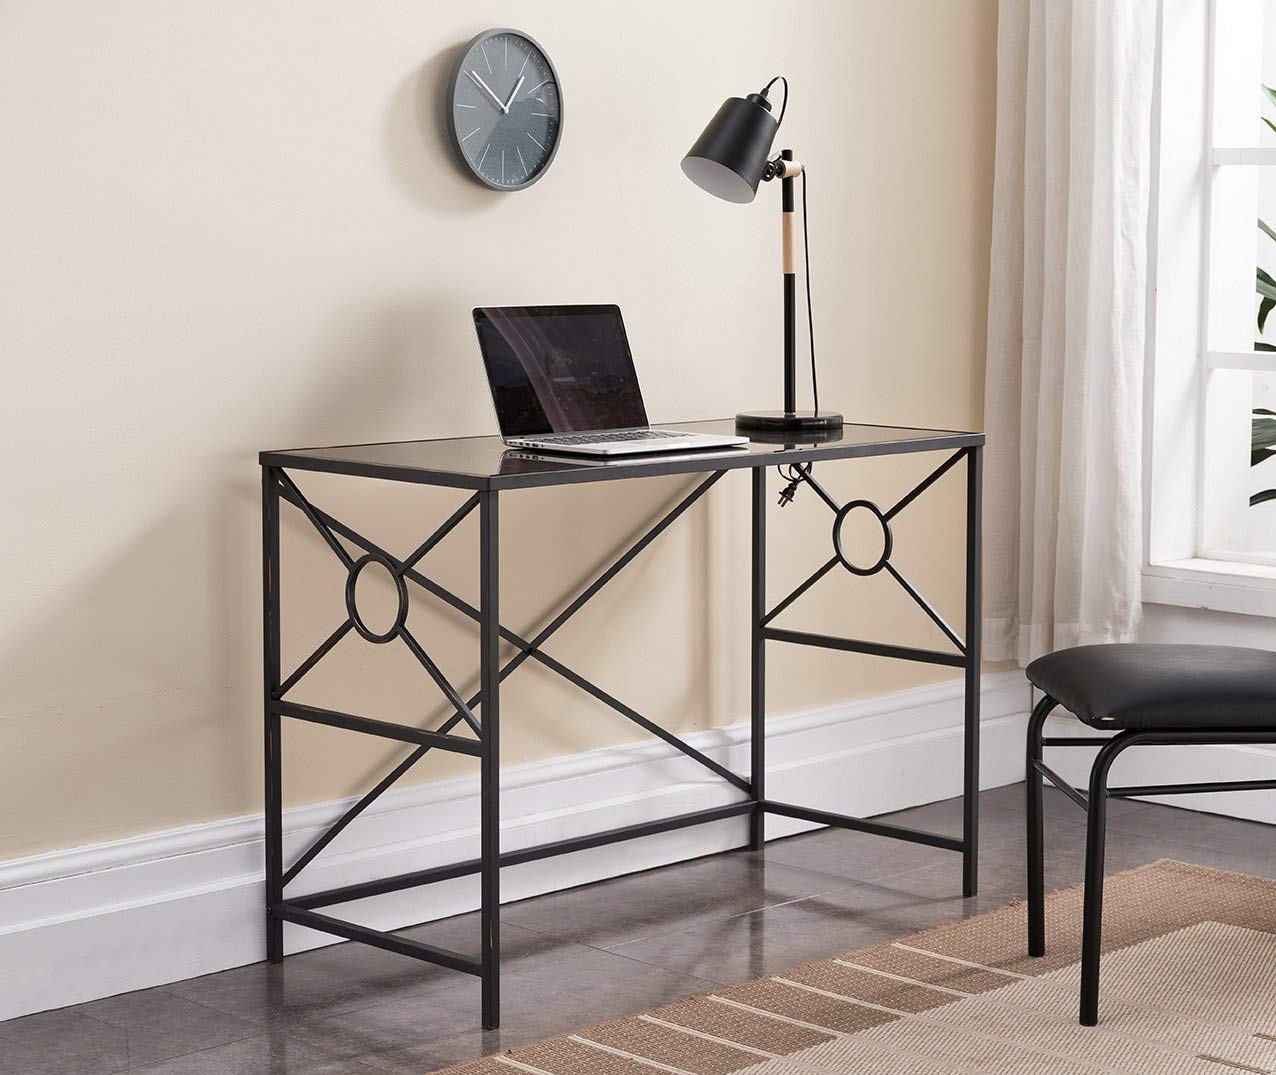 Kings Brand Furniture – Black, Brushed Copper Metal with Tempered Glass Home & Office Computer Desk